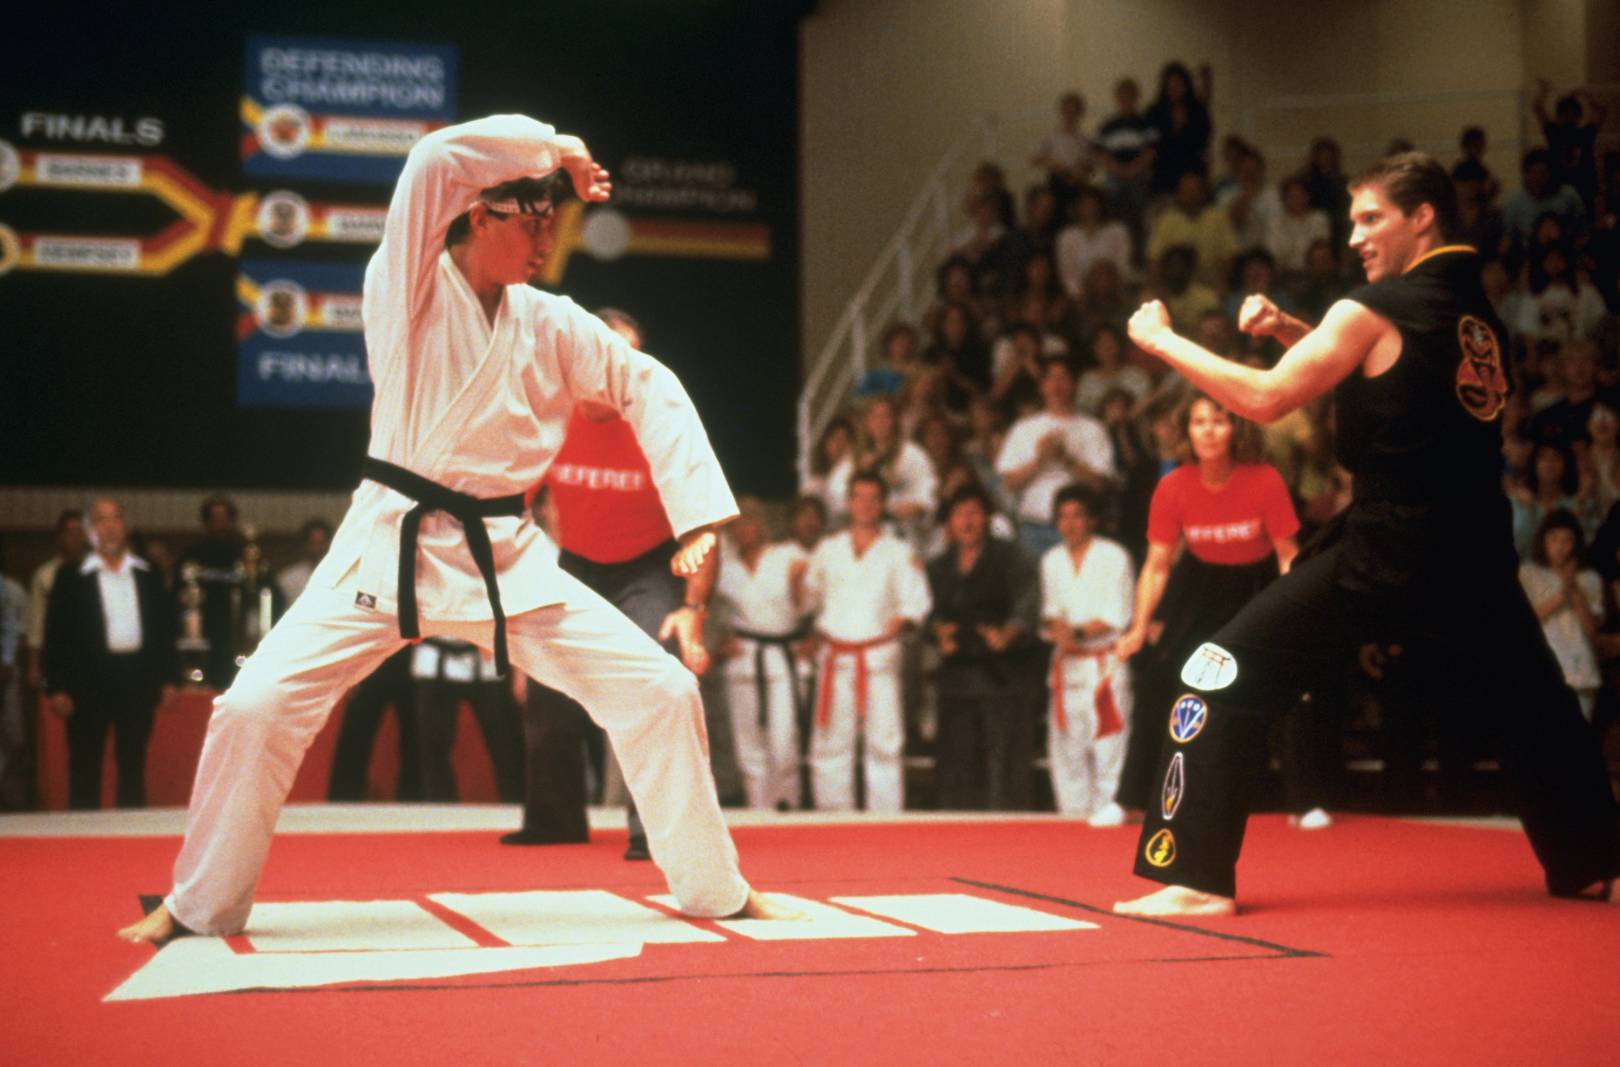 karate_kid3_hi_02_8x10.jpg